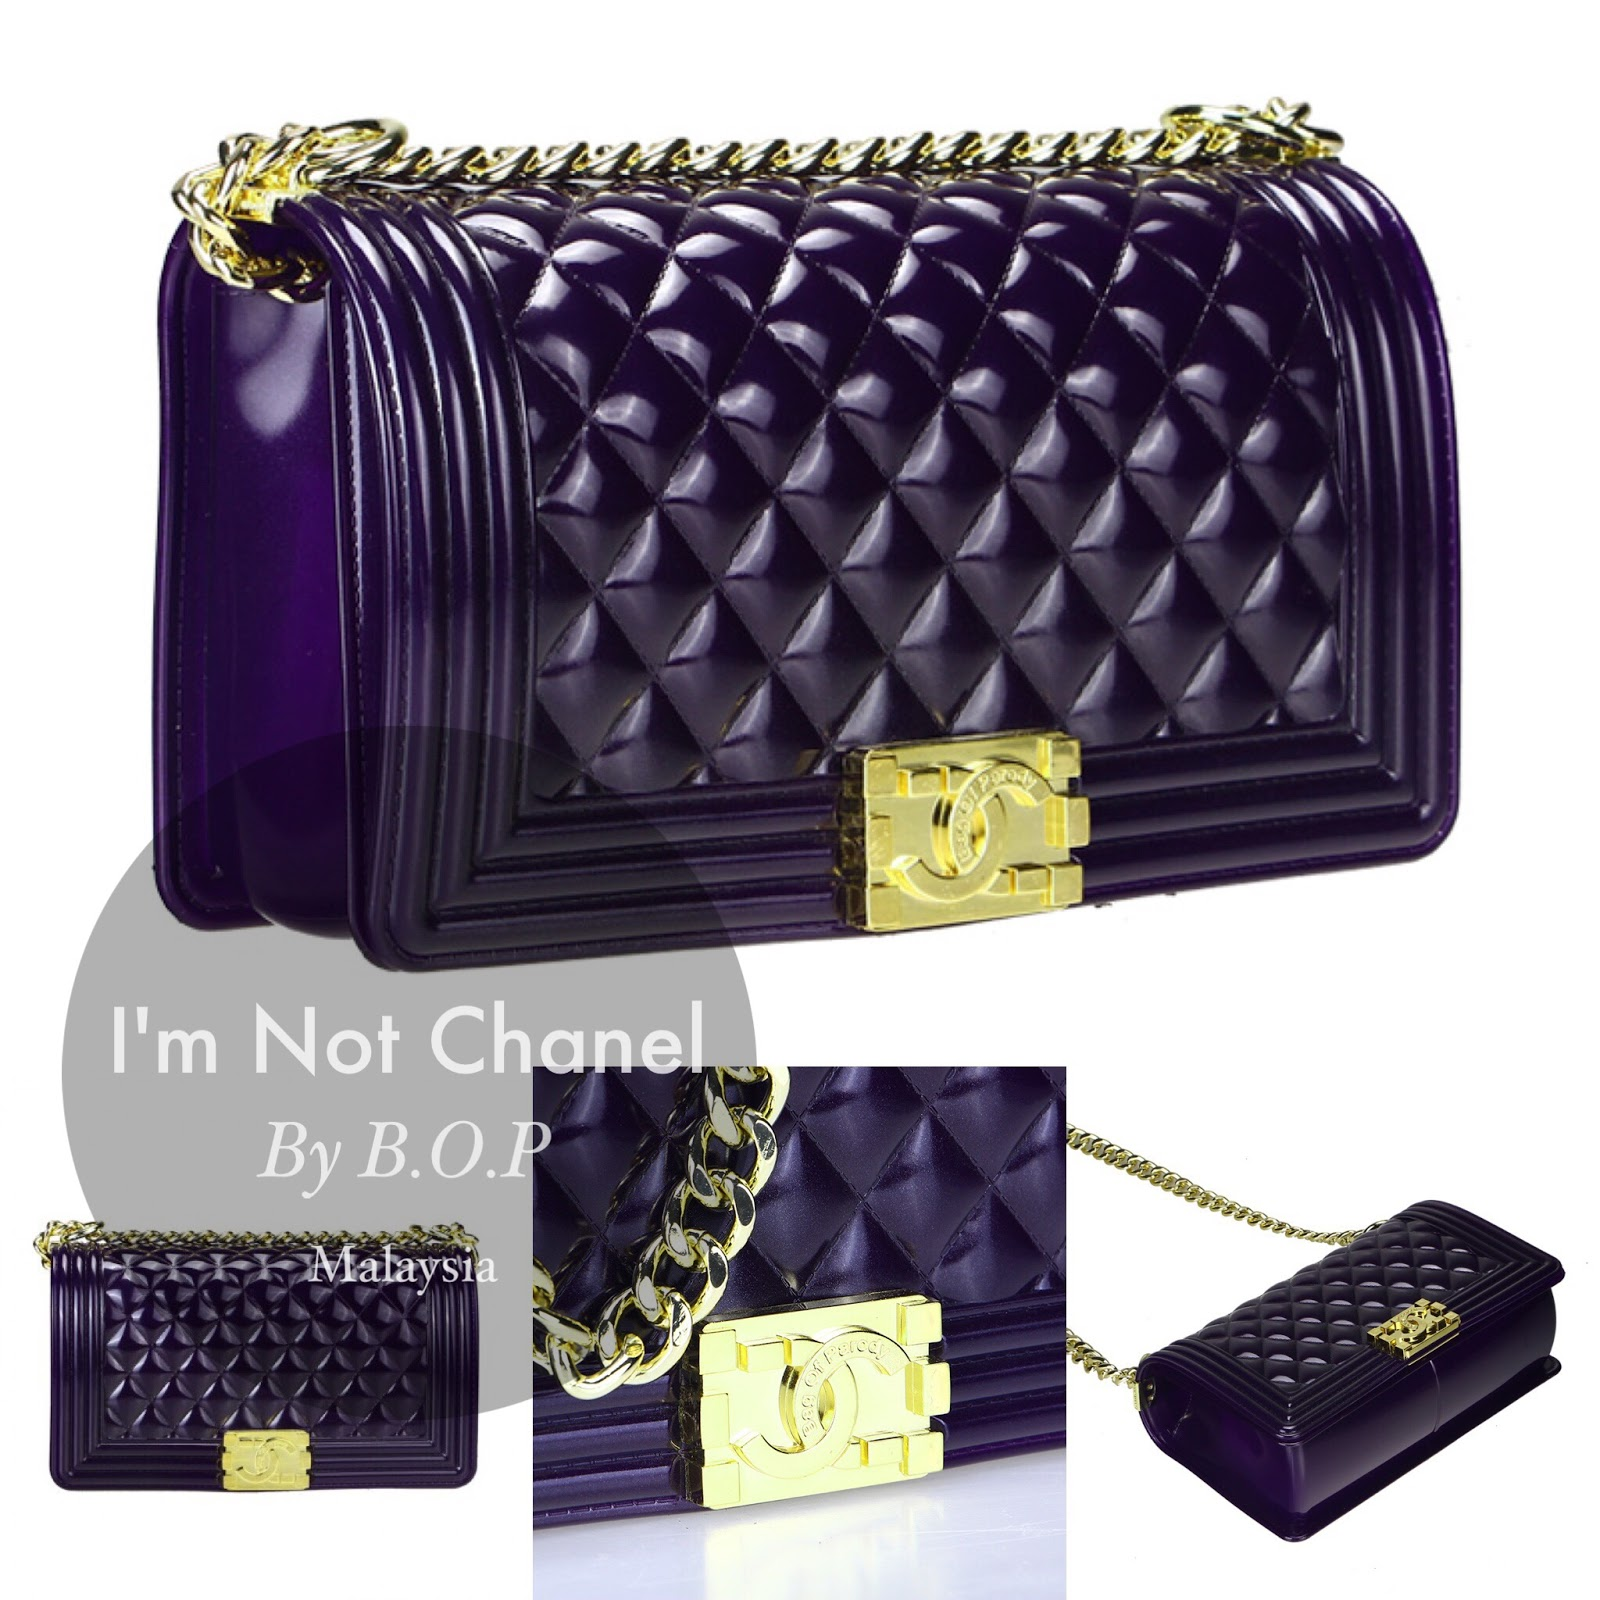 93f391471d30 I'm NOT CHANEL by Bag Of Parody